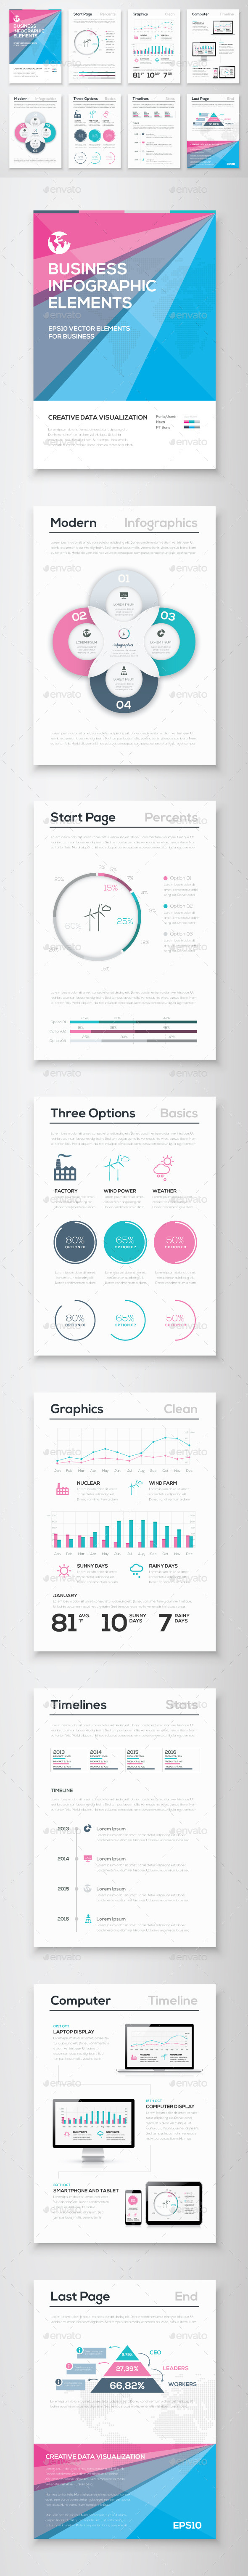 GraphicRiver Infographic Brochure Vector Elements Kit 7 11051967